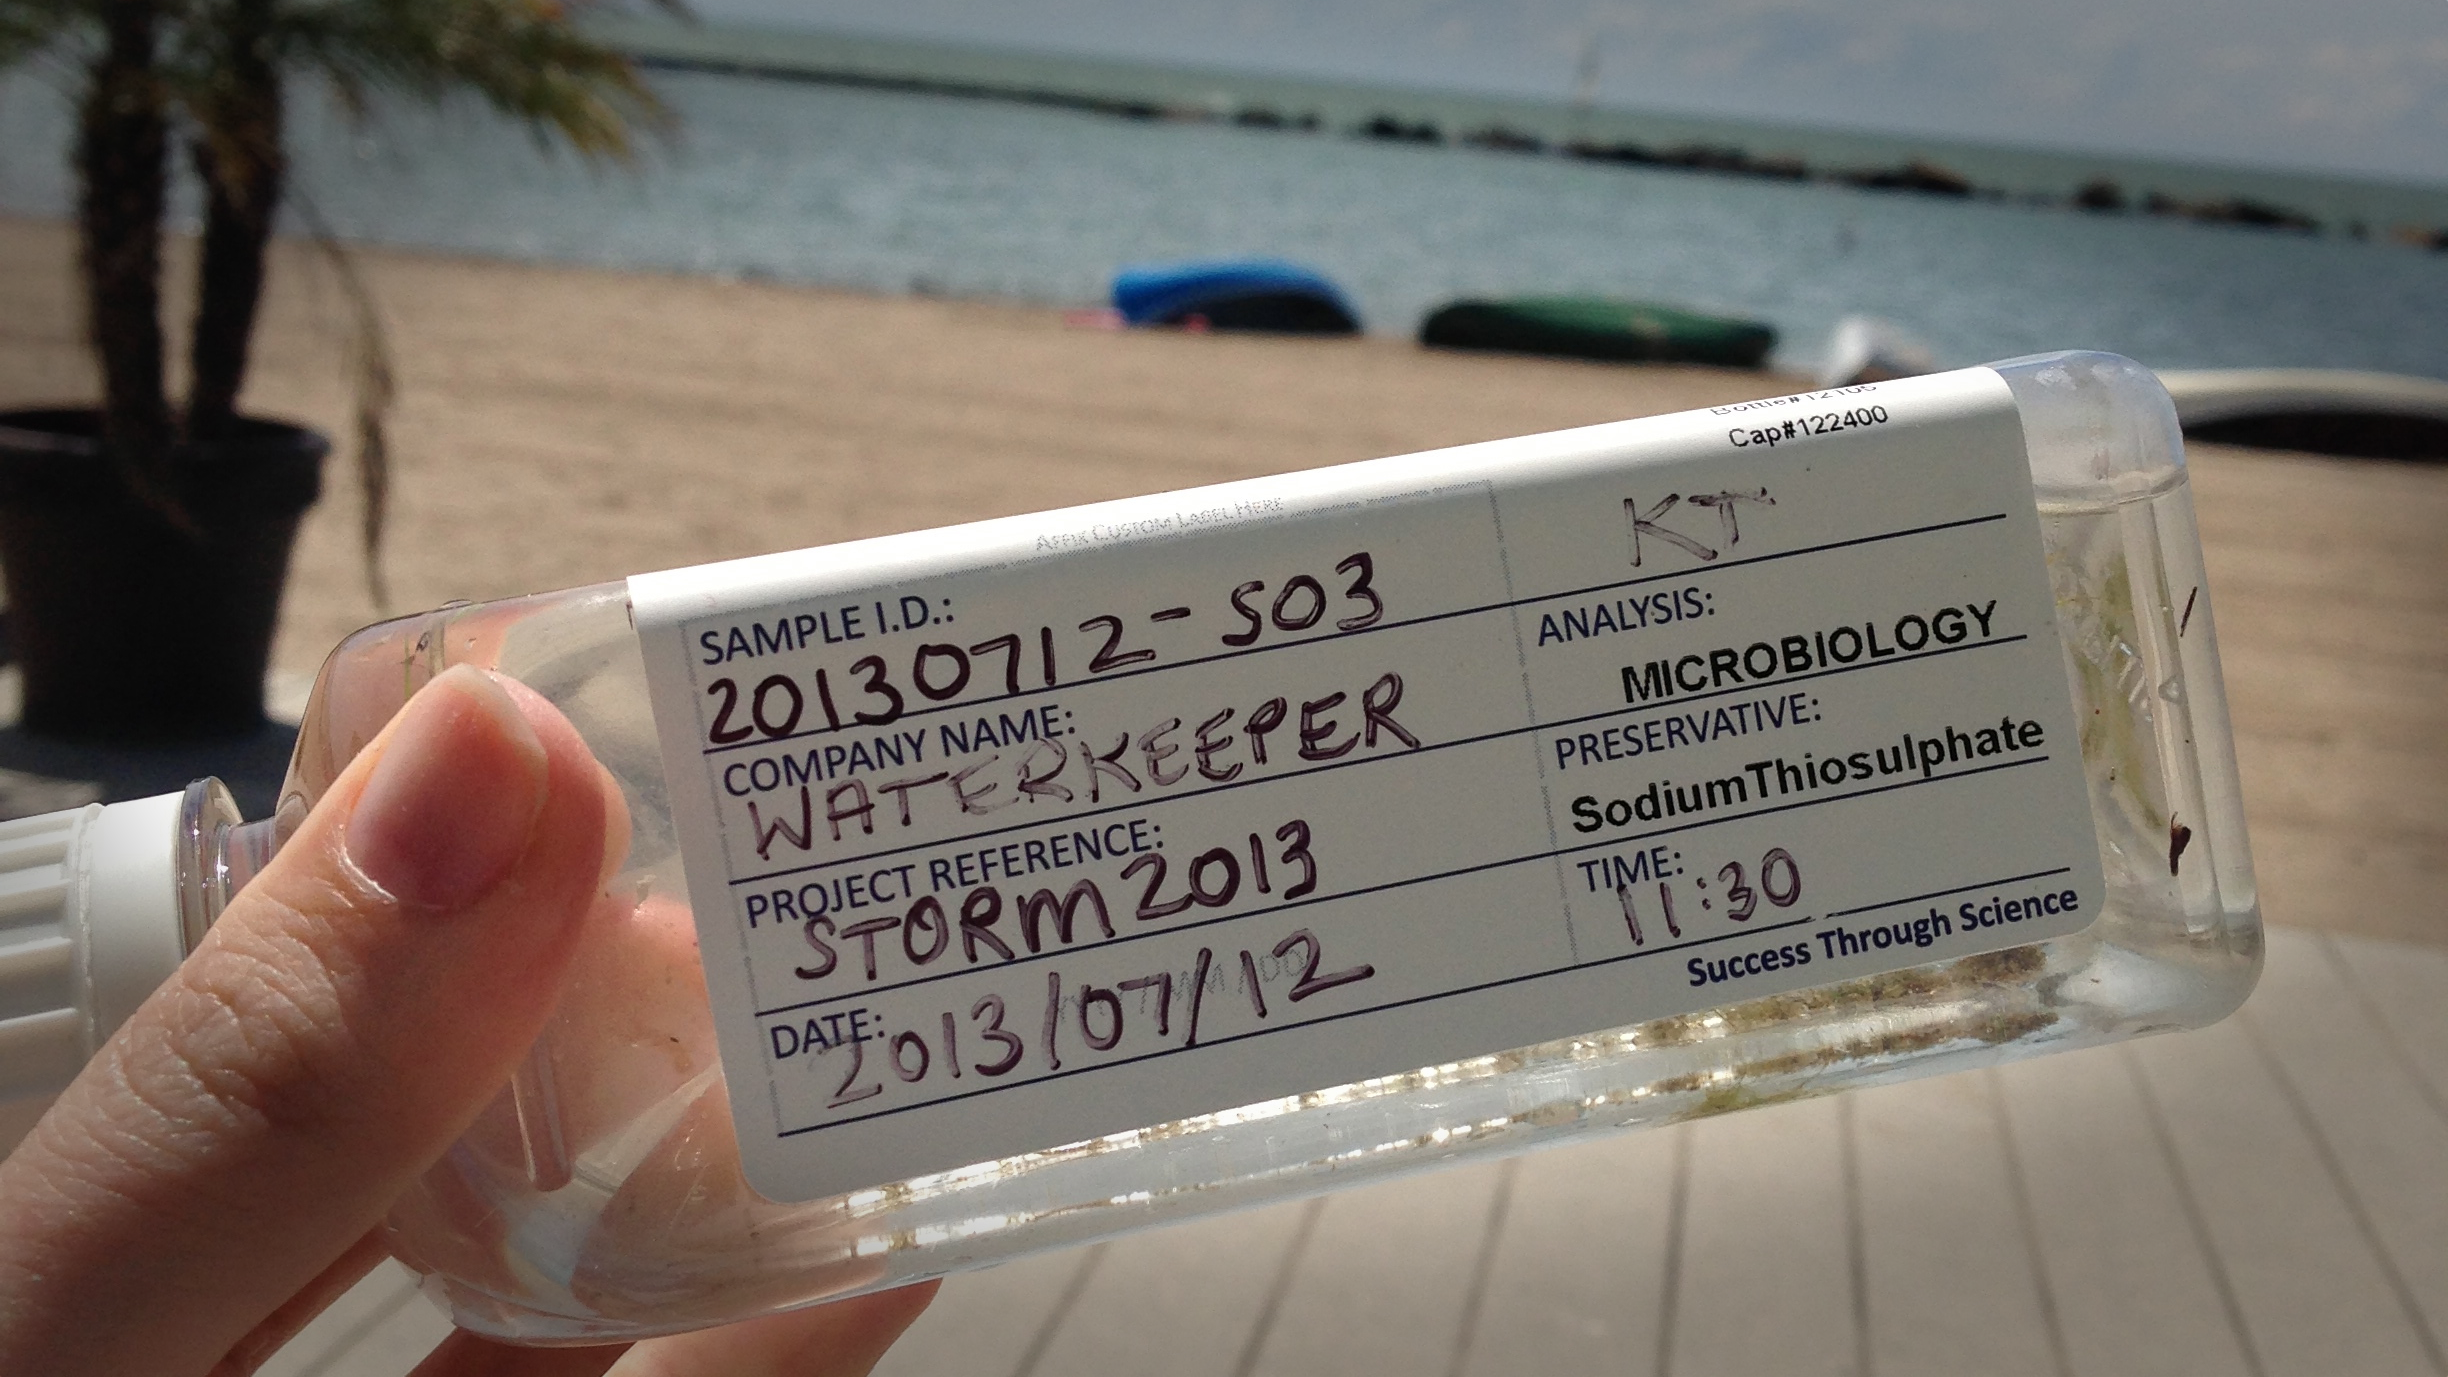 Collecting water quality samples from Sunnyside beach in July, 2013. That summer storm sent bacteria levels sky-rocketing at this popular city swim spot.